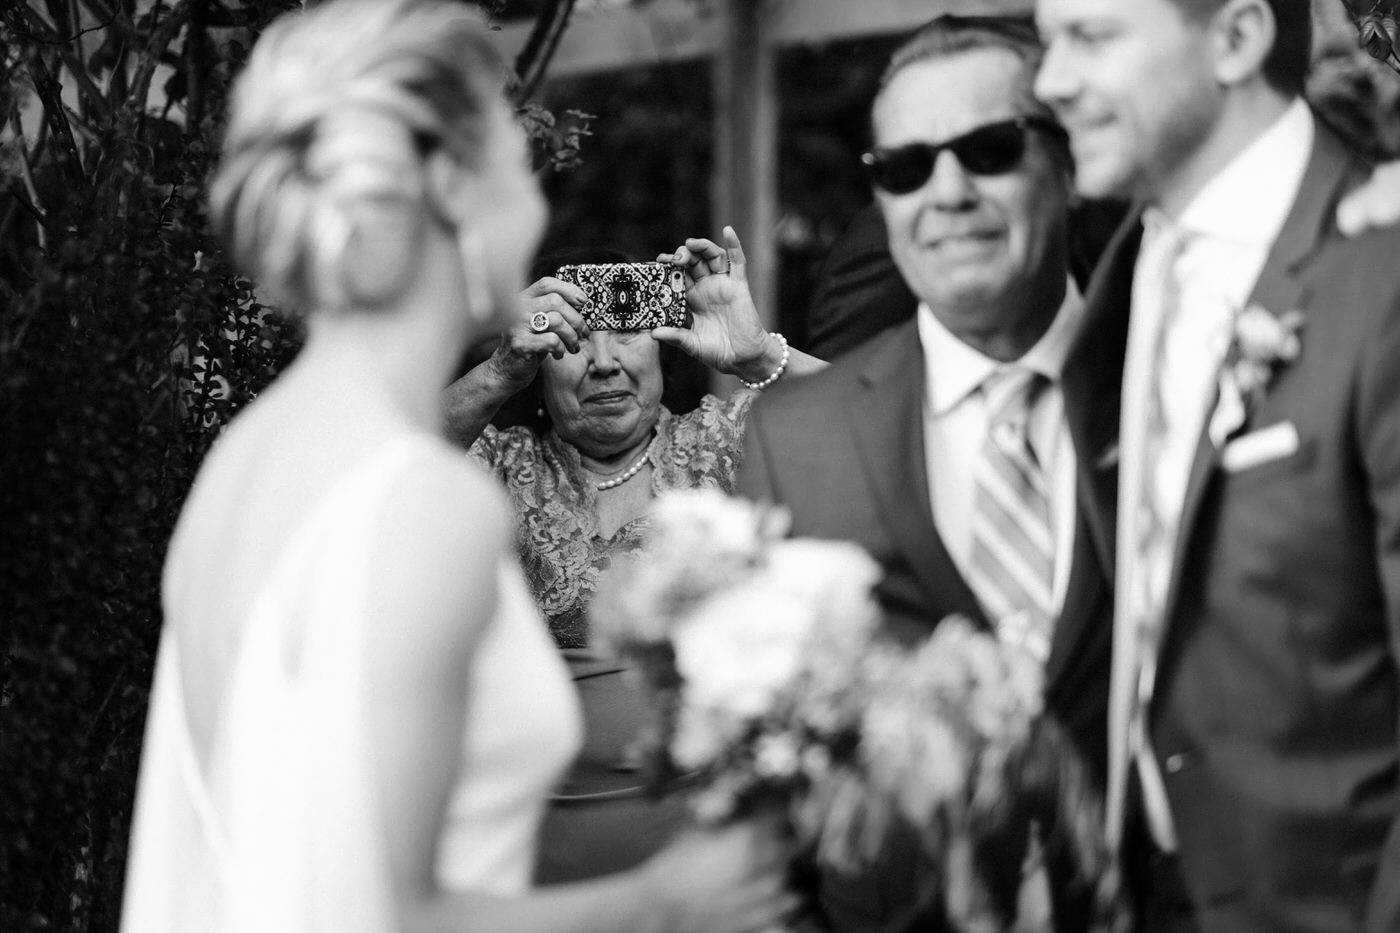 247-pacific-northwest-wedding-photography-by-ryan-flynn.jpg